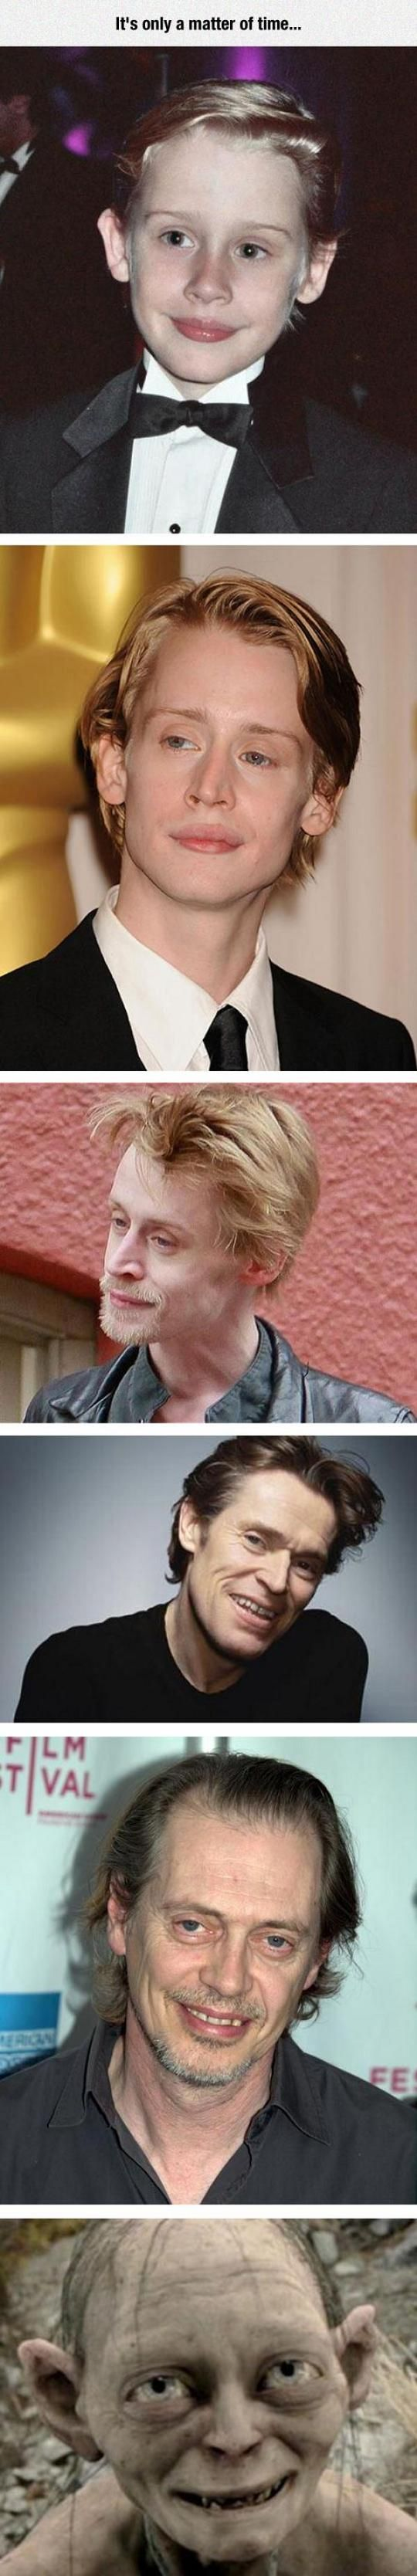 I LOVE both Willem Dafoe and Steve Buscemi. I did NOT create this, I just thought it was funny. Altho, inaccurate because reality would skip Willem and Steve and go straight to Gollum... just sayin...